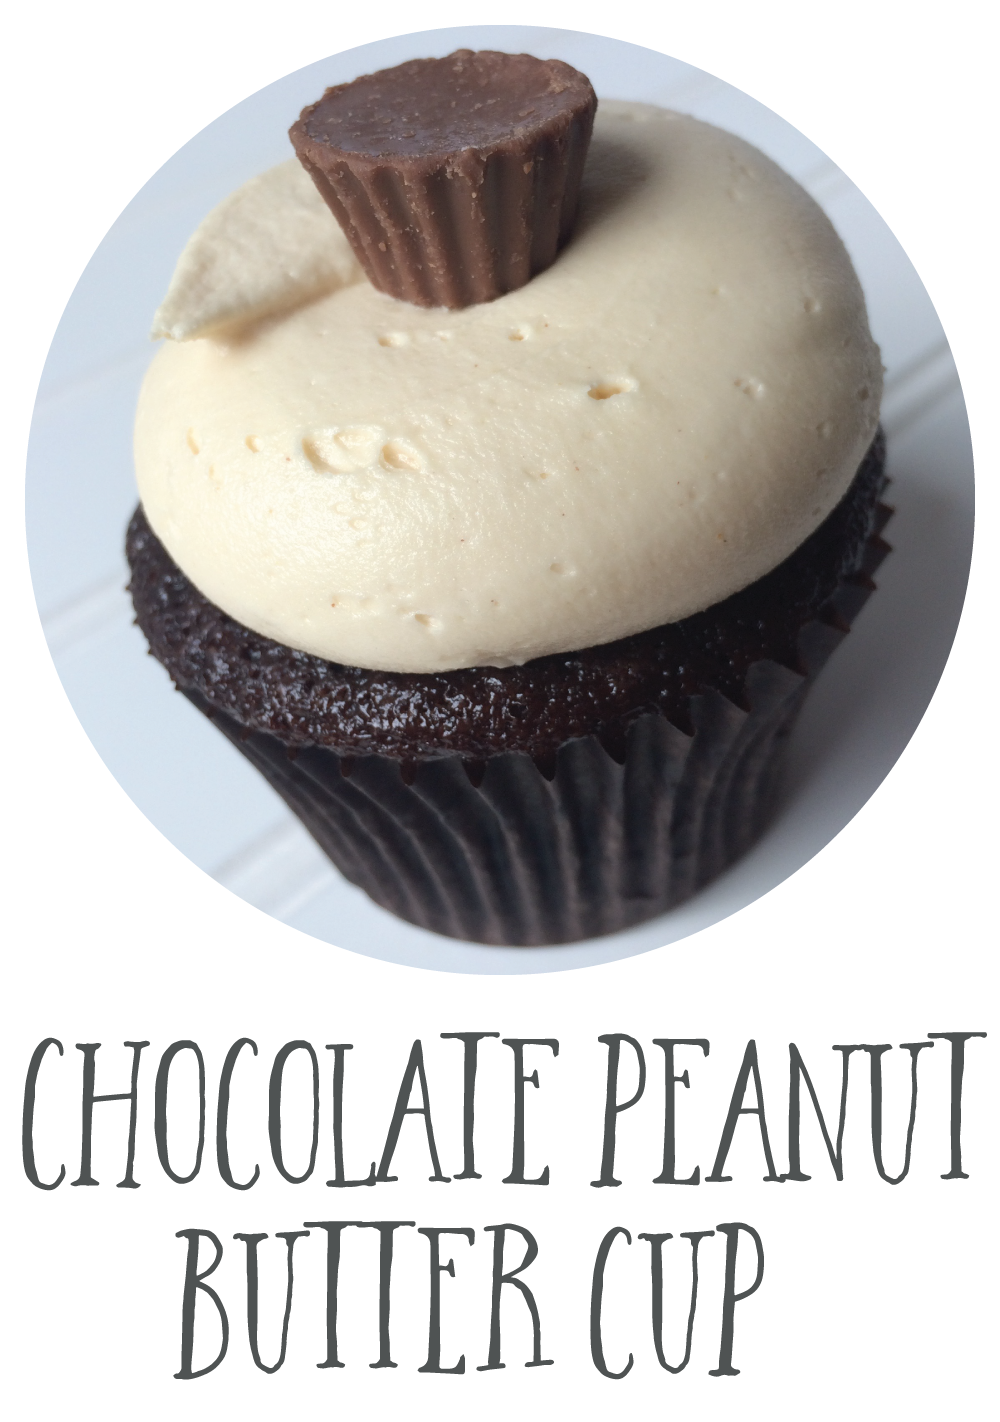 Choc-peanut-butter-cup.png